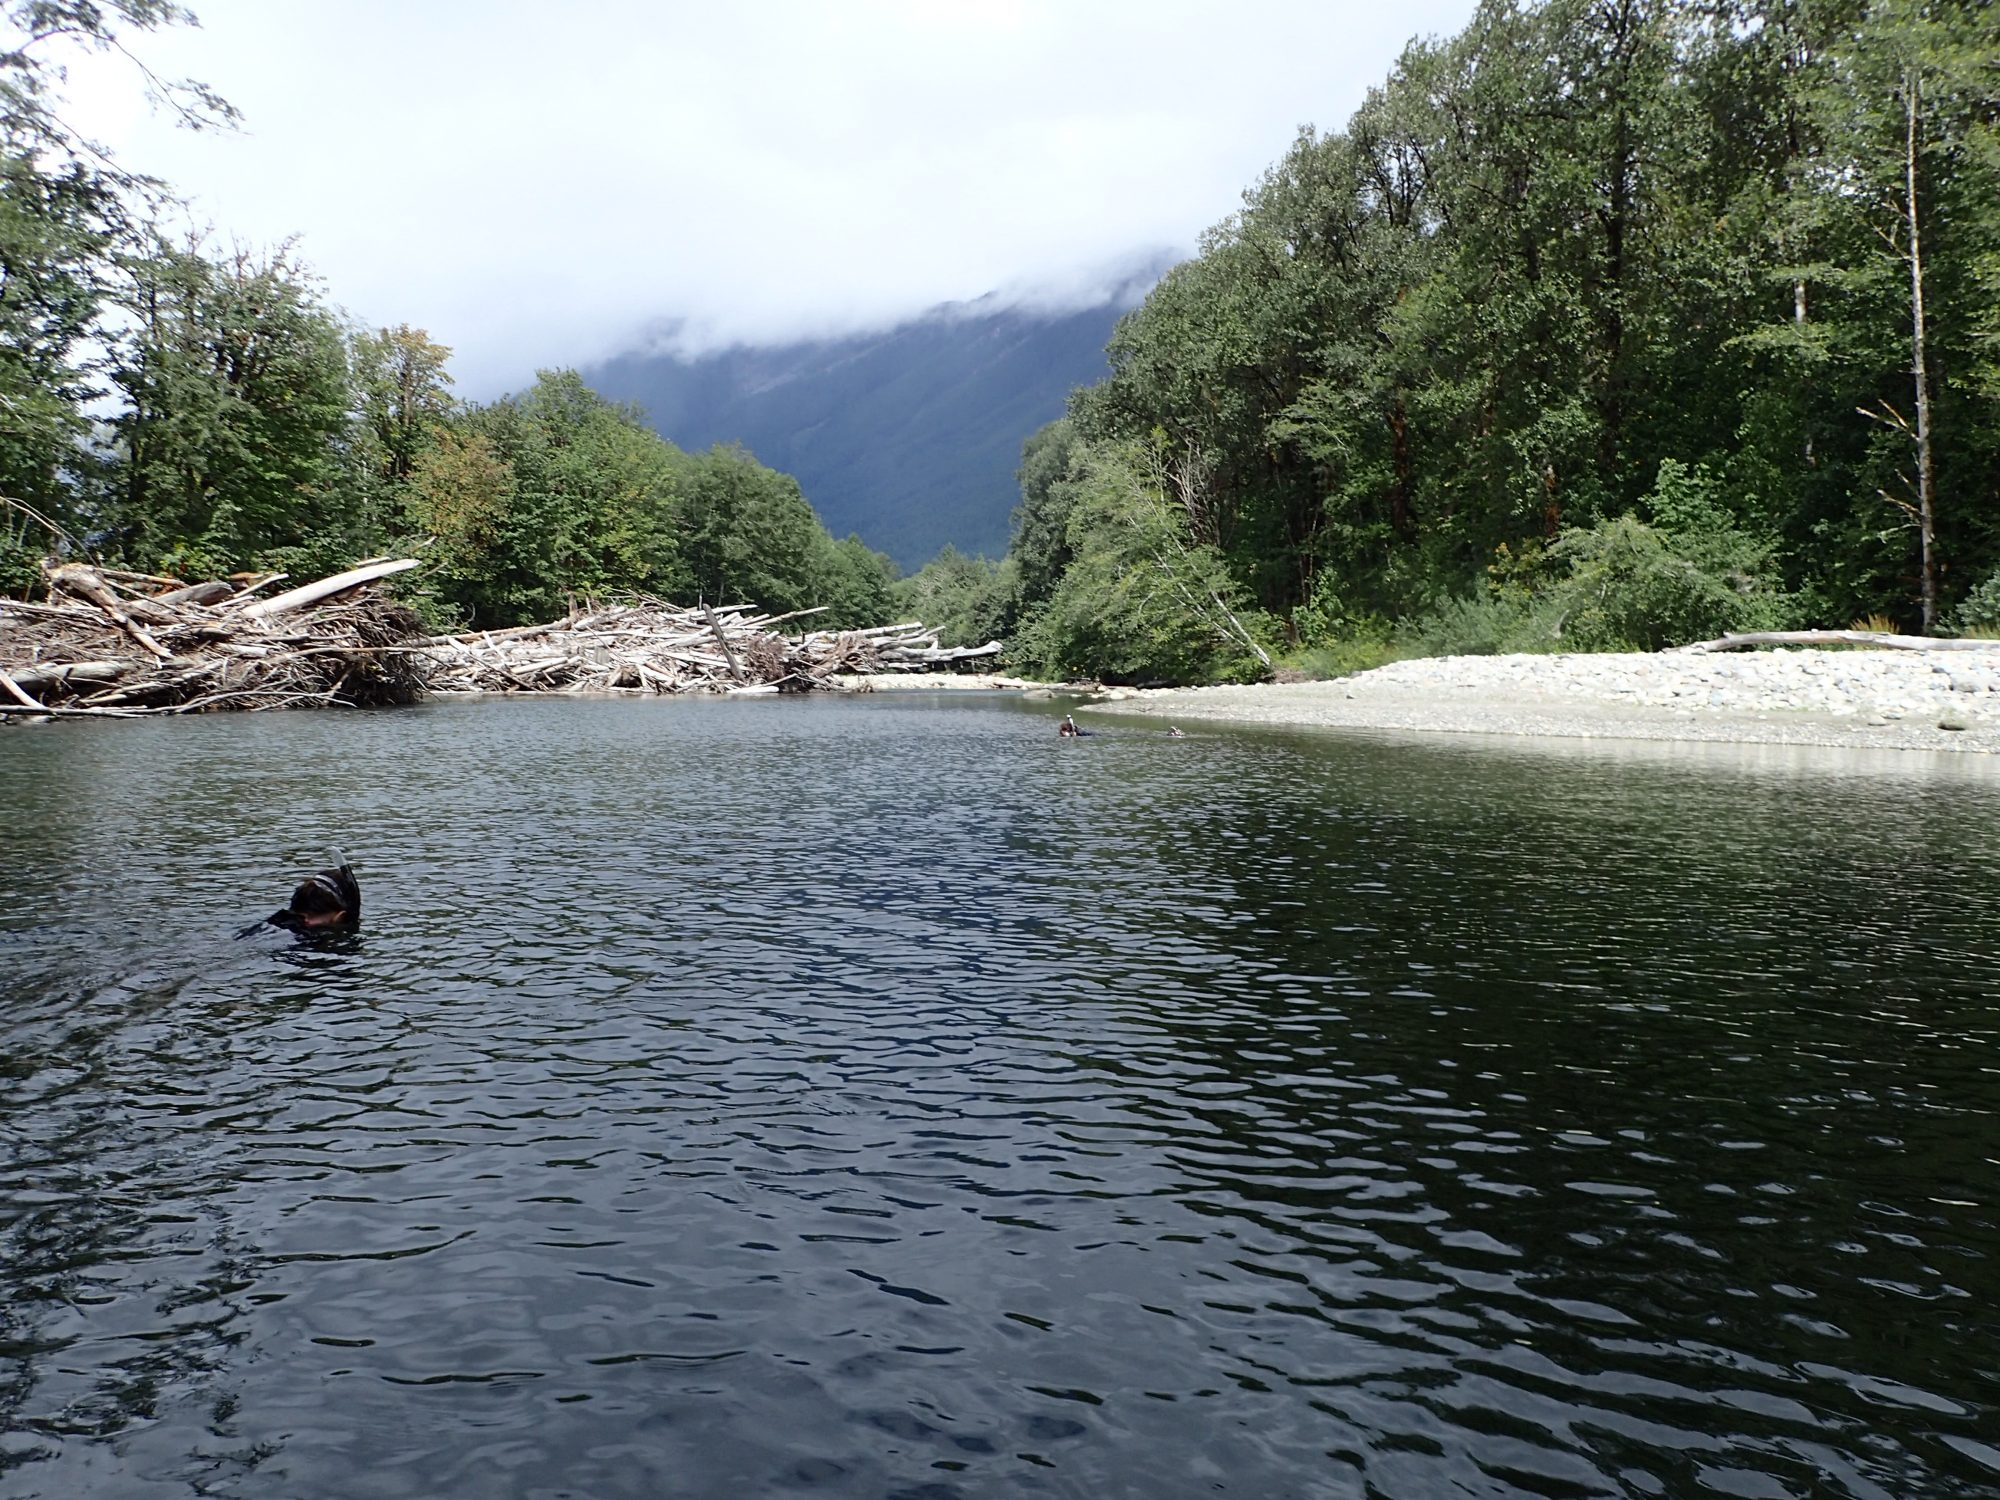 Snorkel surveying on the North Fork Stillaguamish River near Fortson Hole